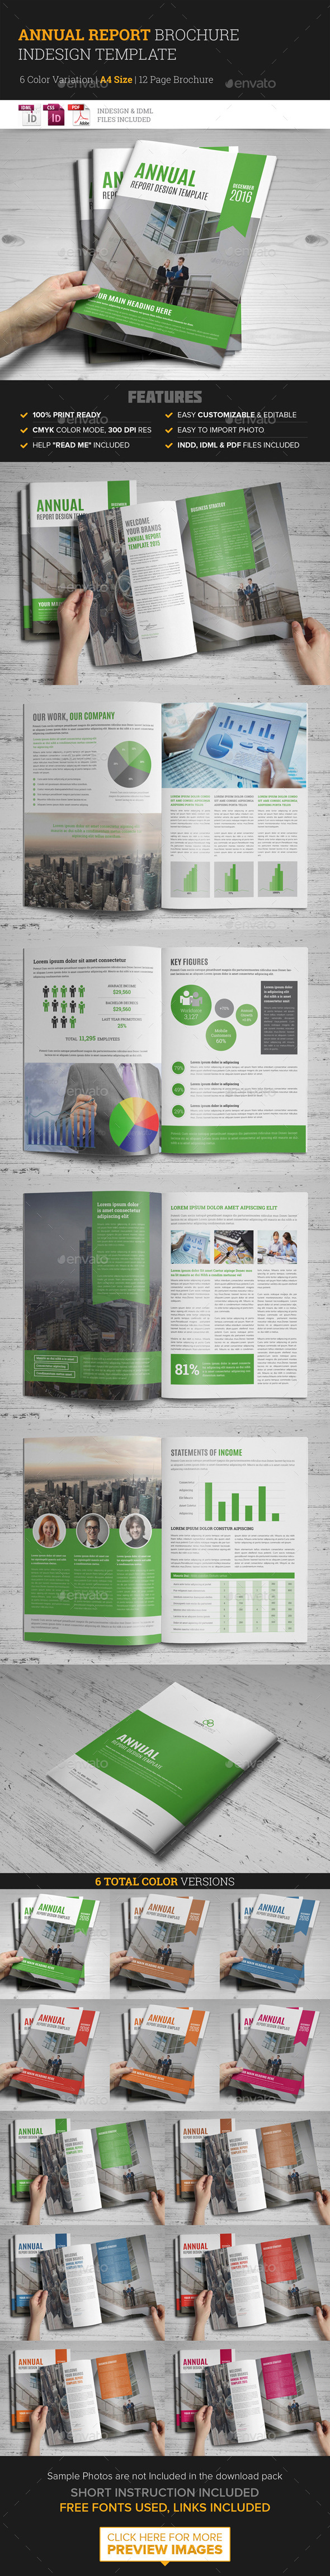 GraphicRiver Annual Report Brochure Indesign Template 10025246